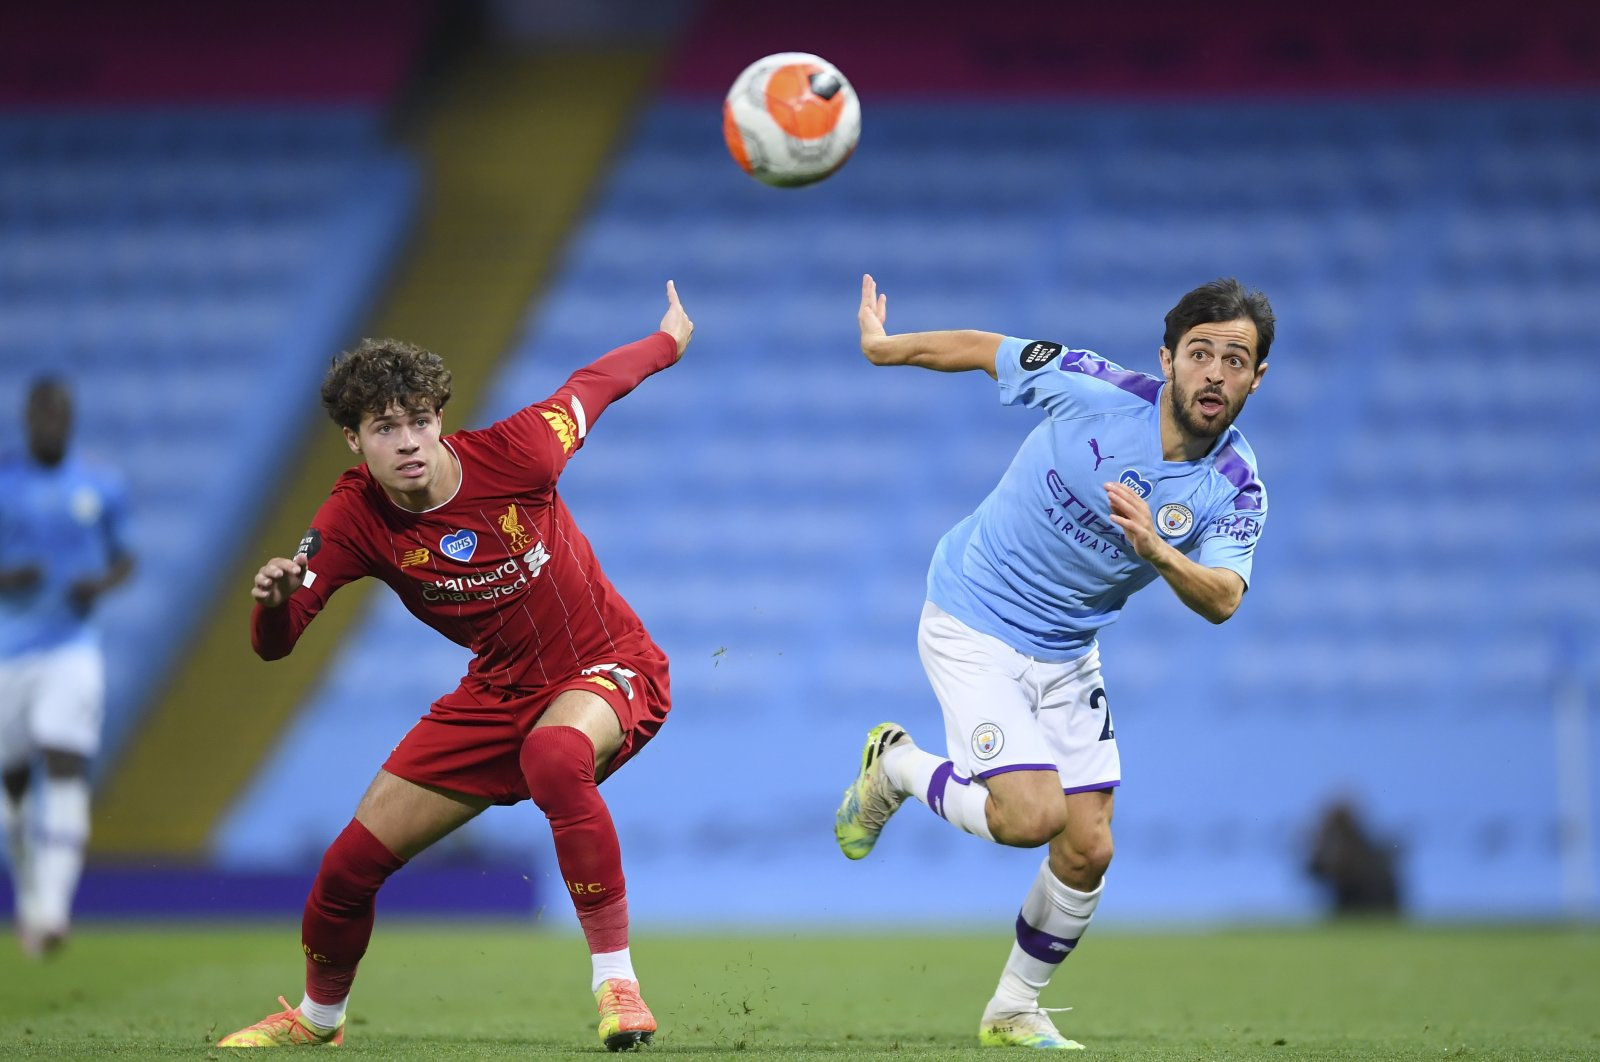 Manchester City's Bernardo Silva (R) and Liverpool's Neco Williams battle for the ball during a Premier League match in Manchester, England, July 2, 2020. (AP Photo)